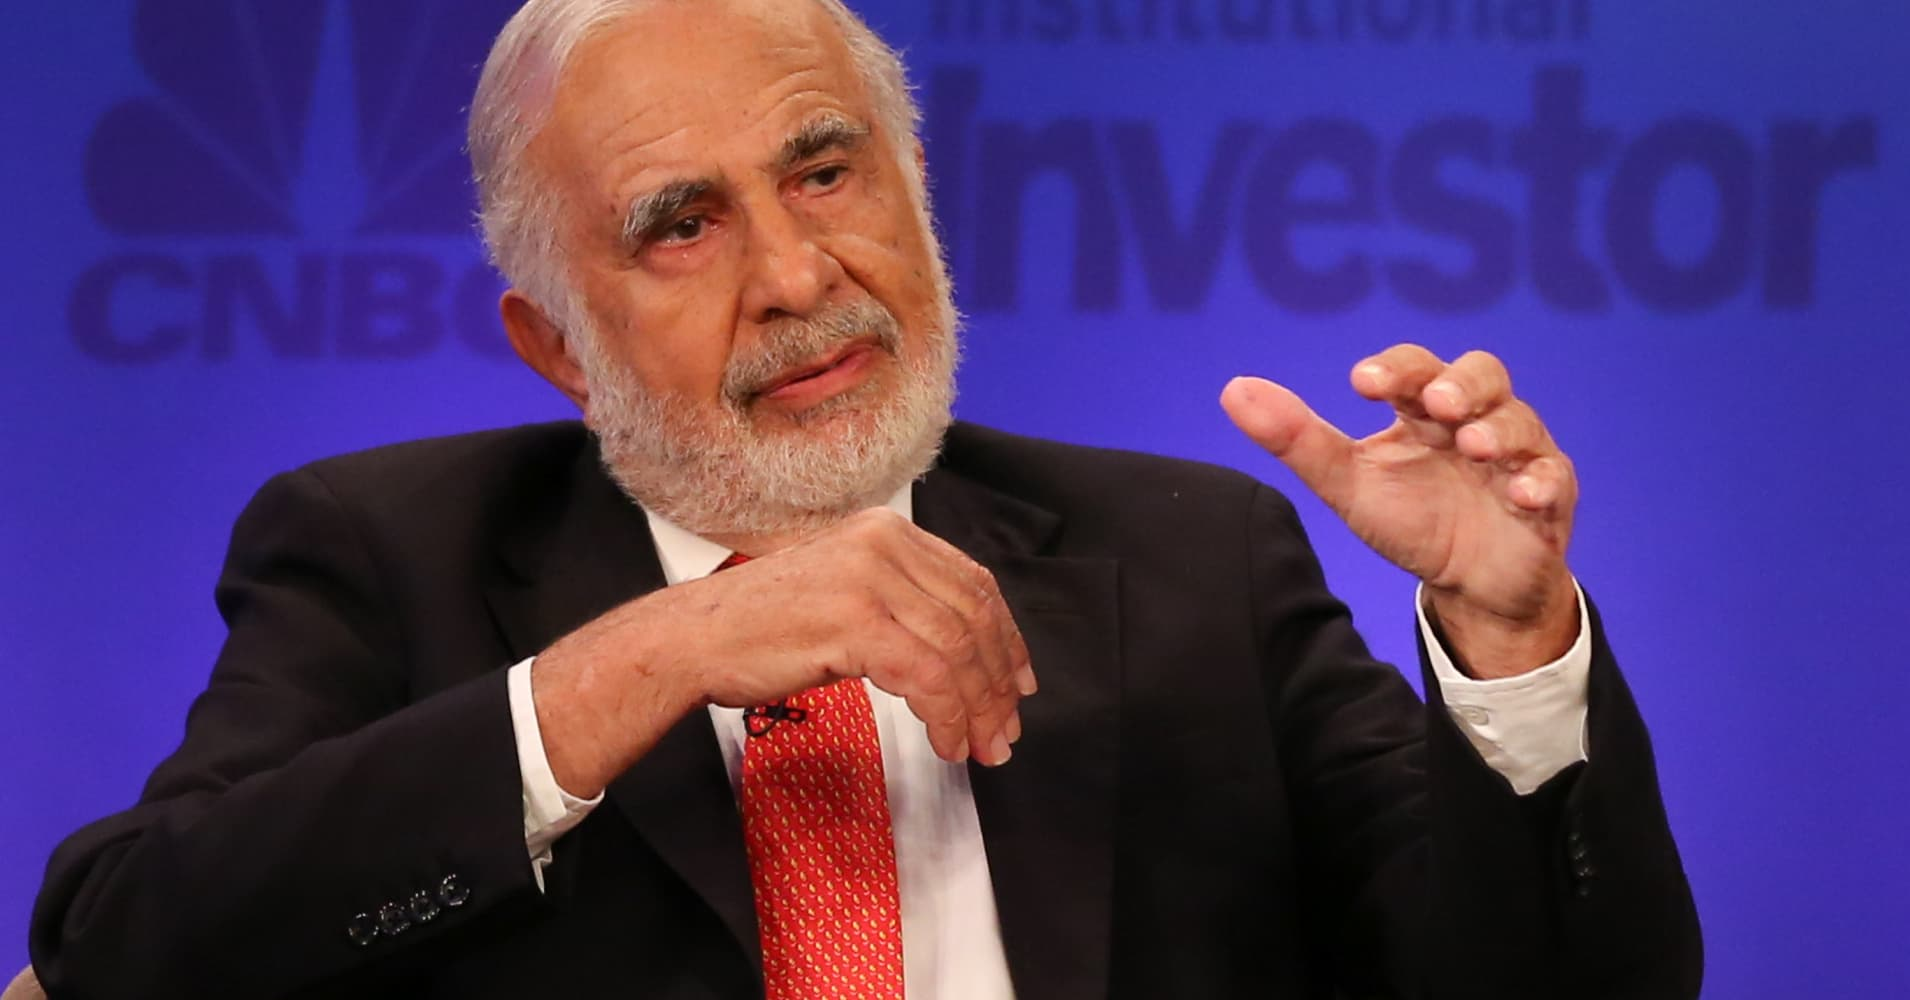 Cautious Carl Icahn says market has gotten into a 'euphoric state'